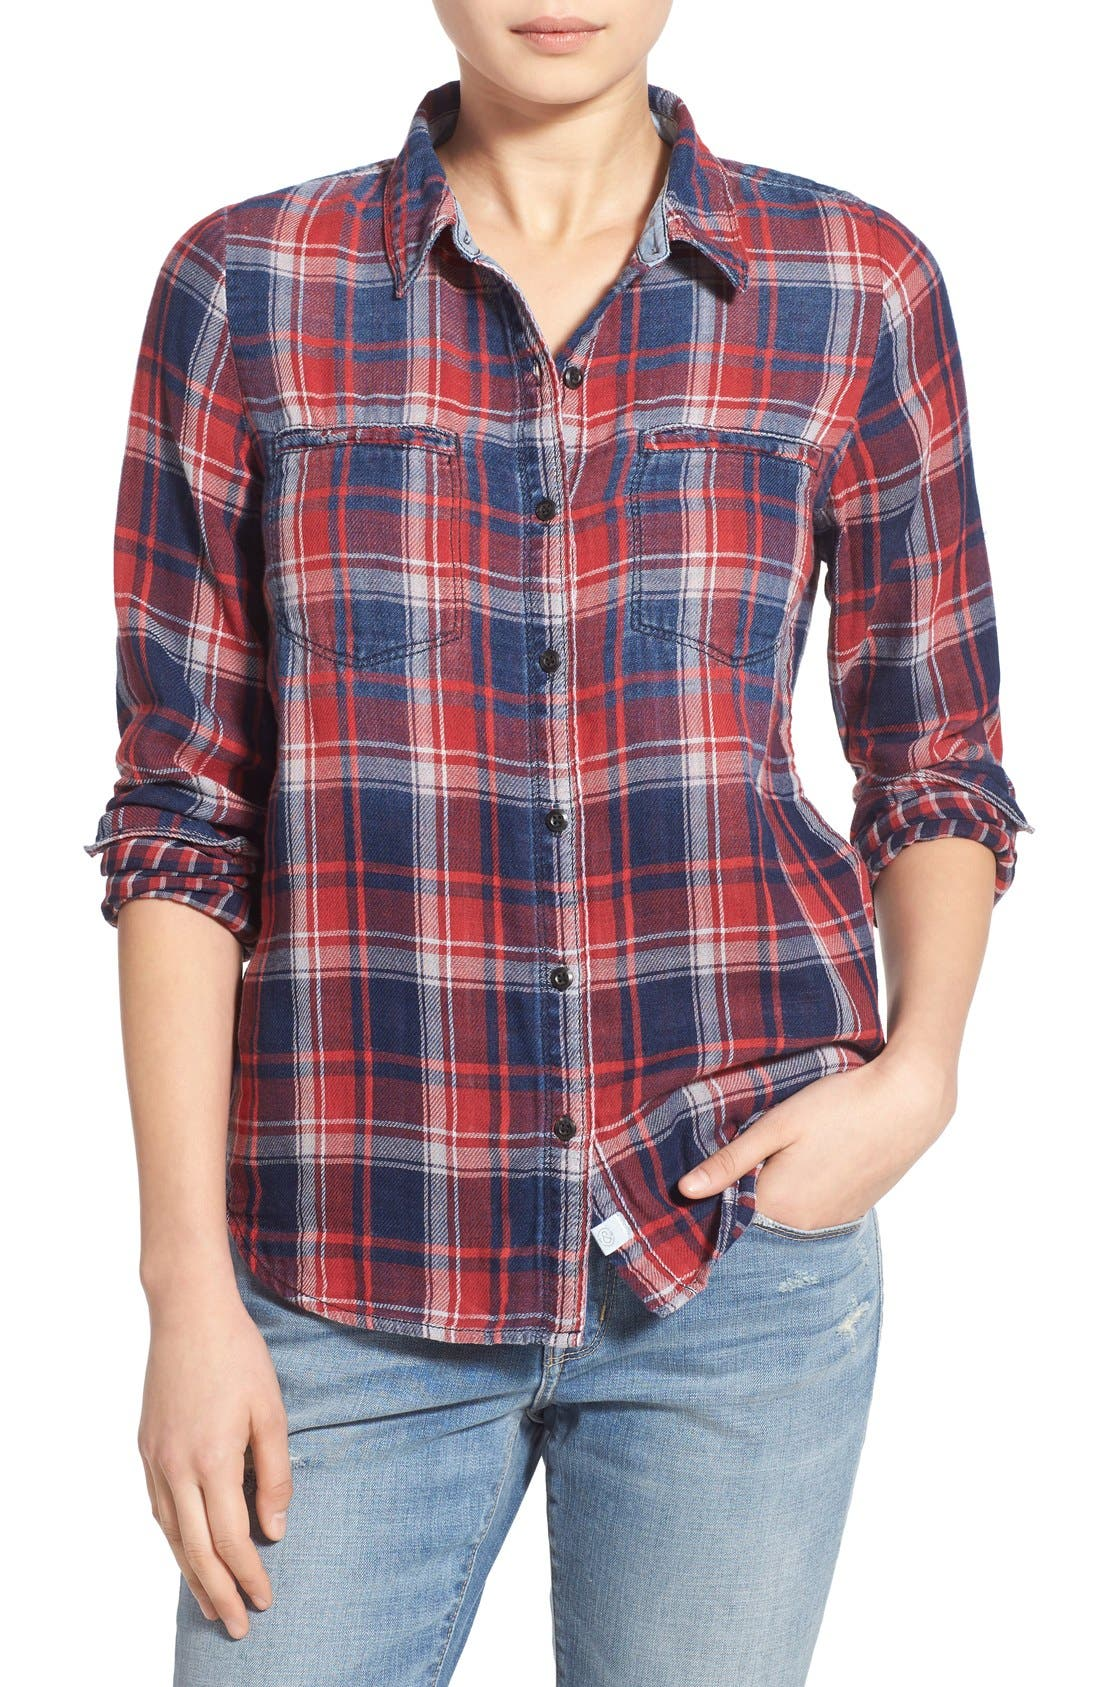 Treasure&Bond Classic Fit Plaid Shirt,                         Main,                         color, 400